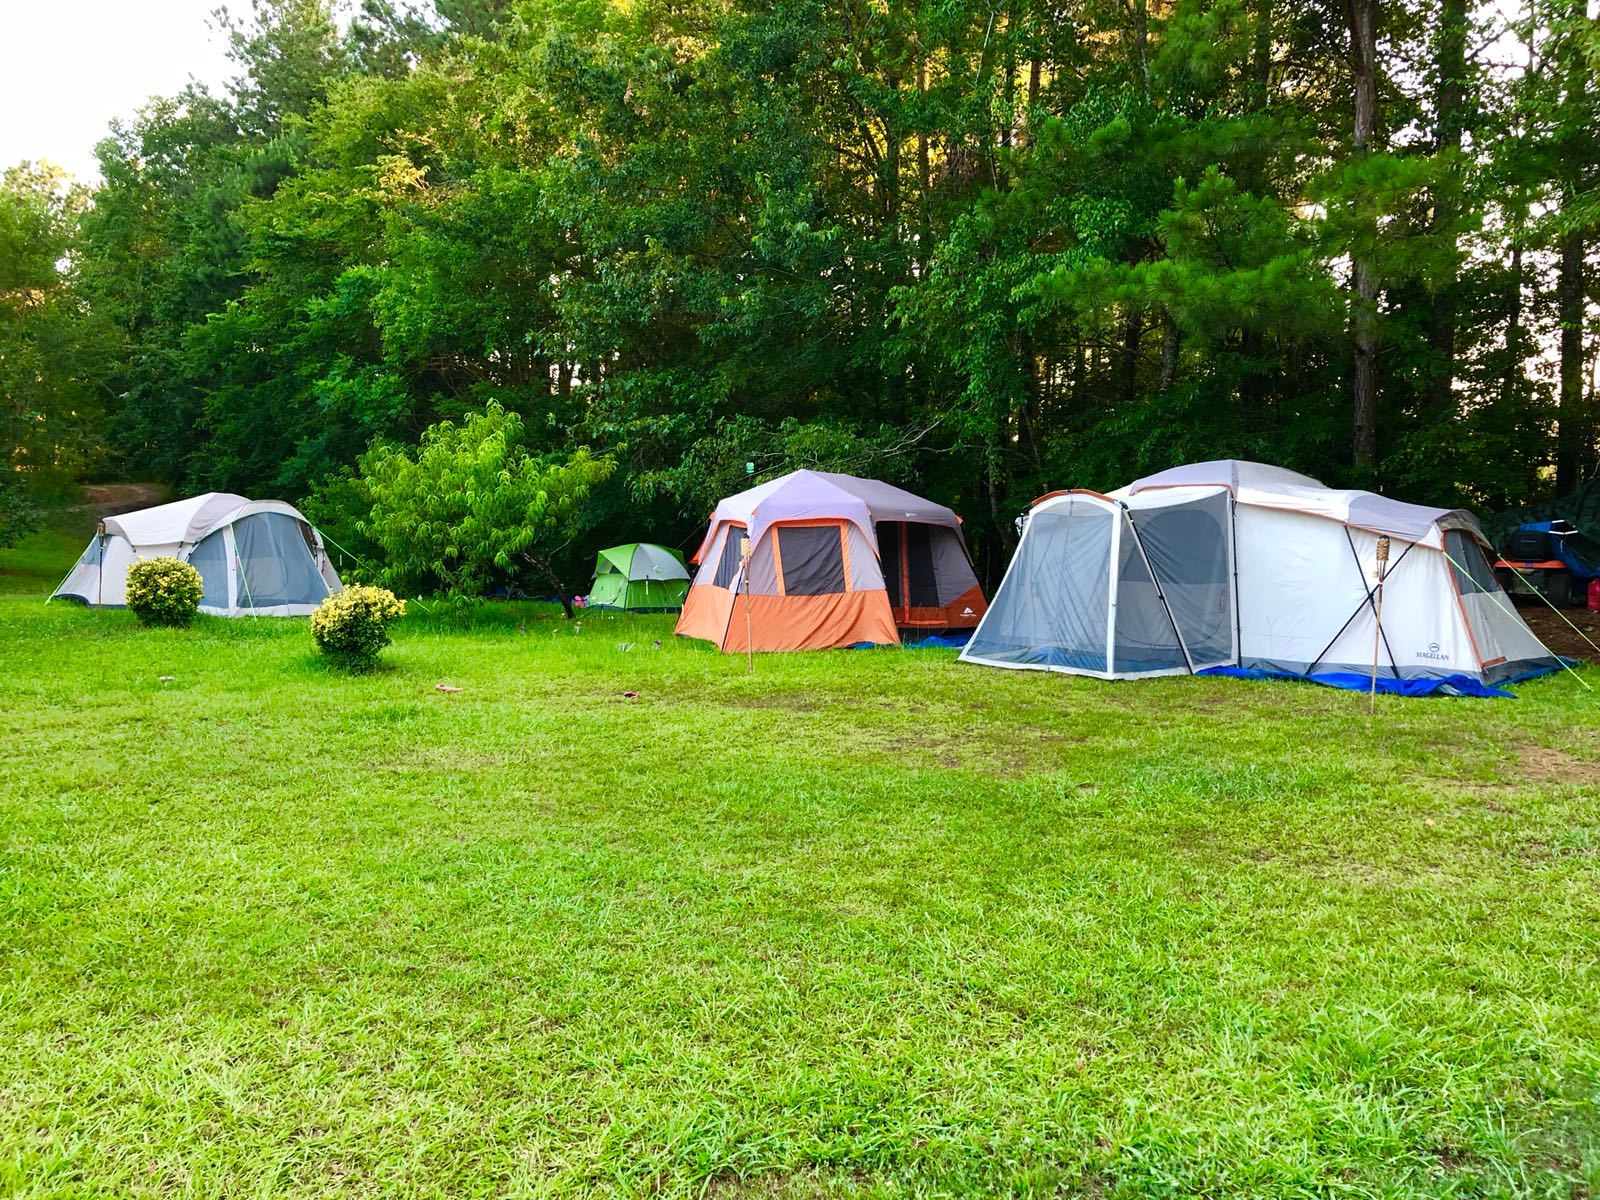 Campsite #1 at Healing Exchange AL